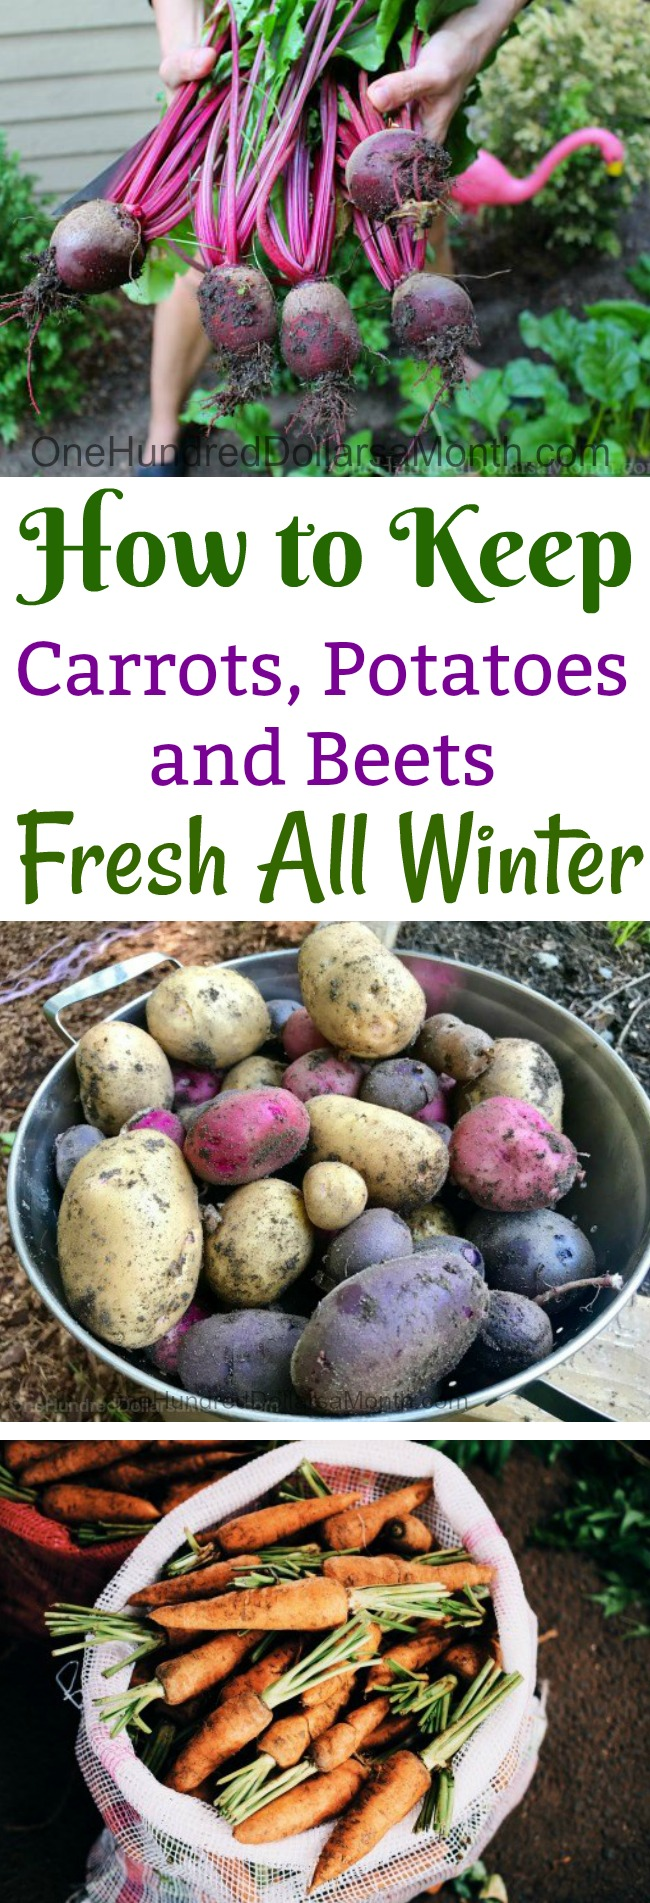 how to keep carrots potatoes and beets fresh all winter one